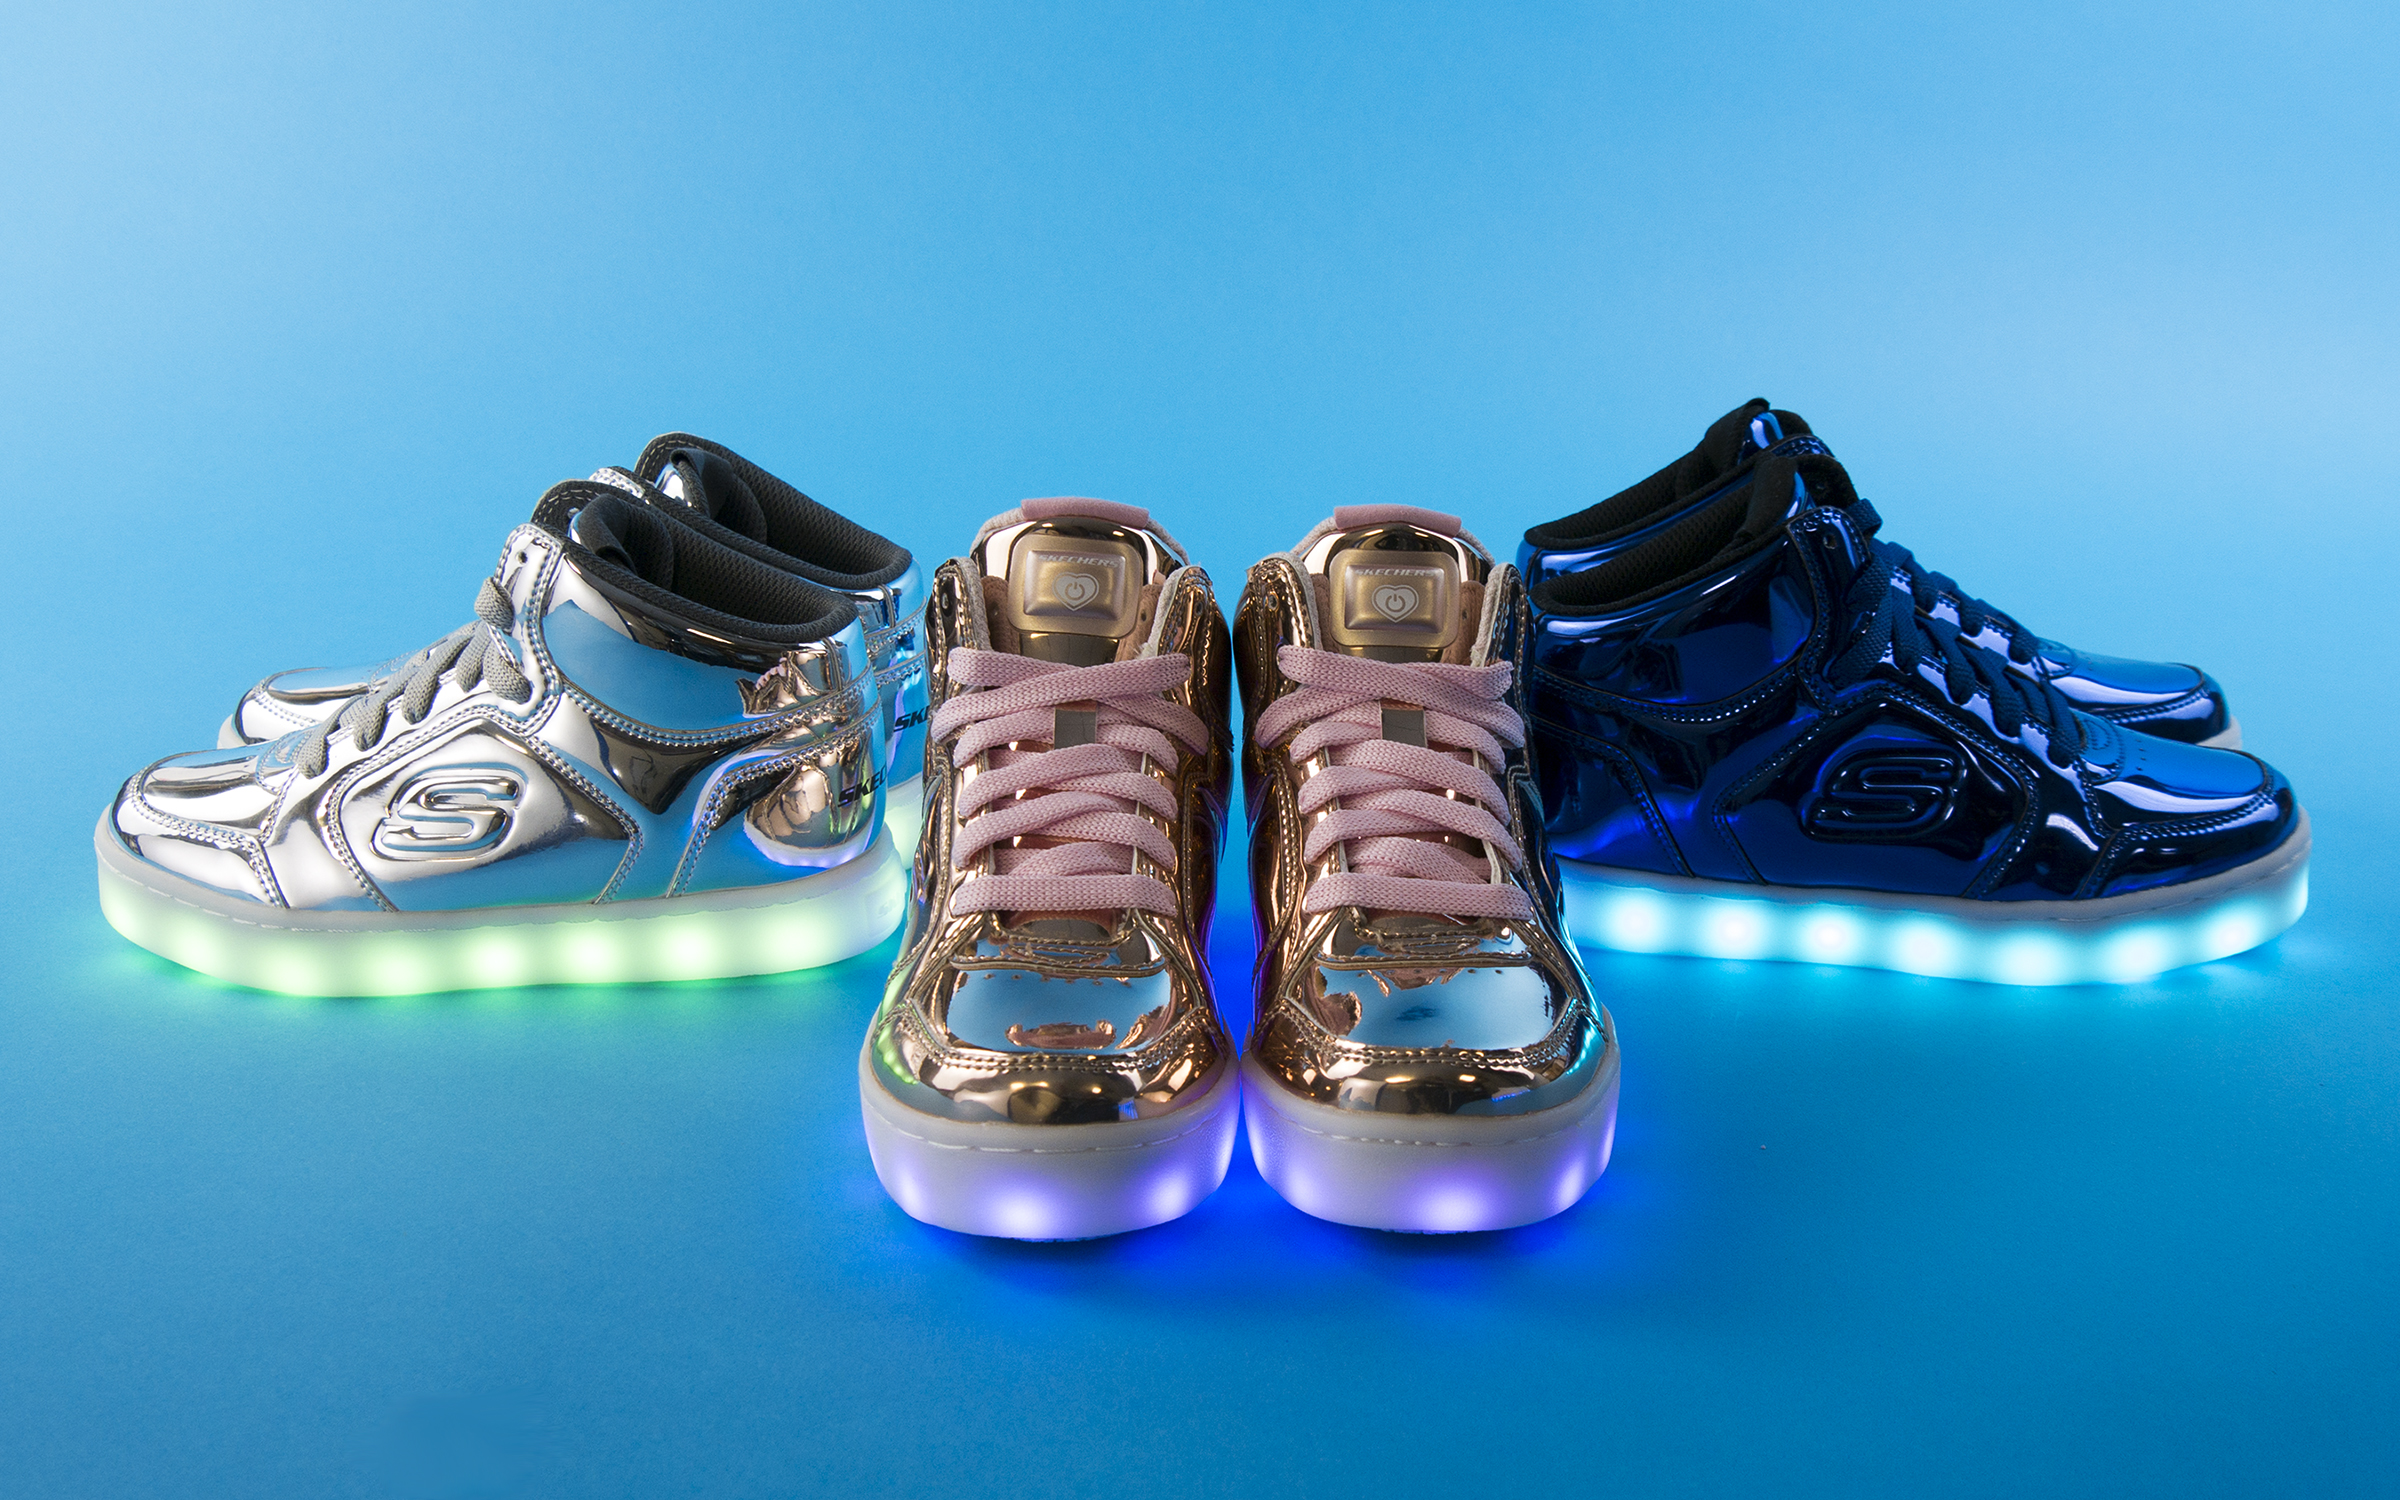 where to buy skechers swipe lights